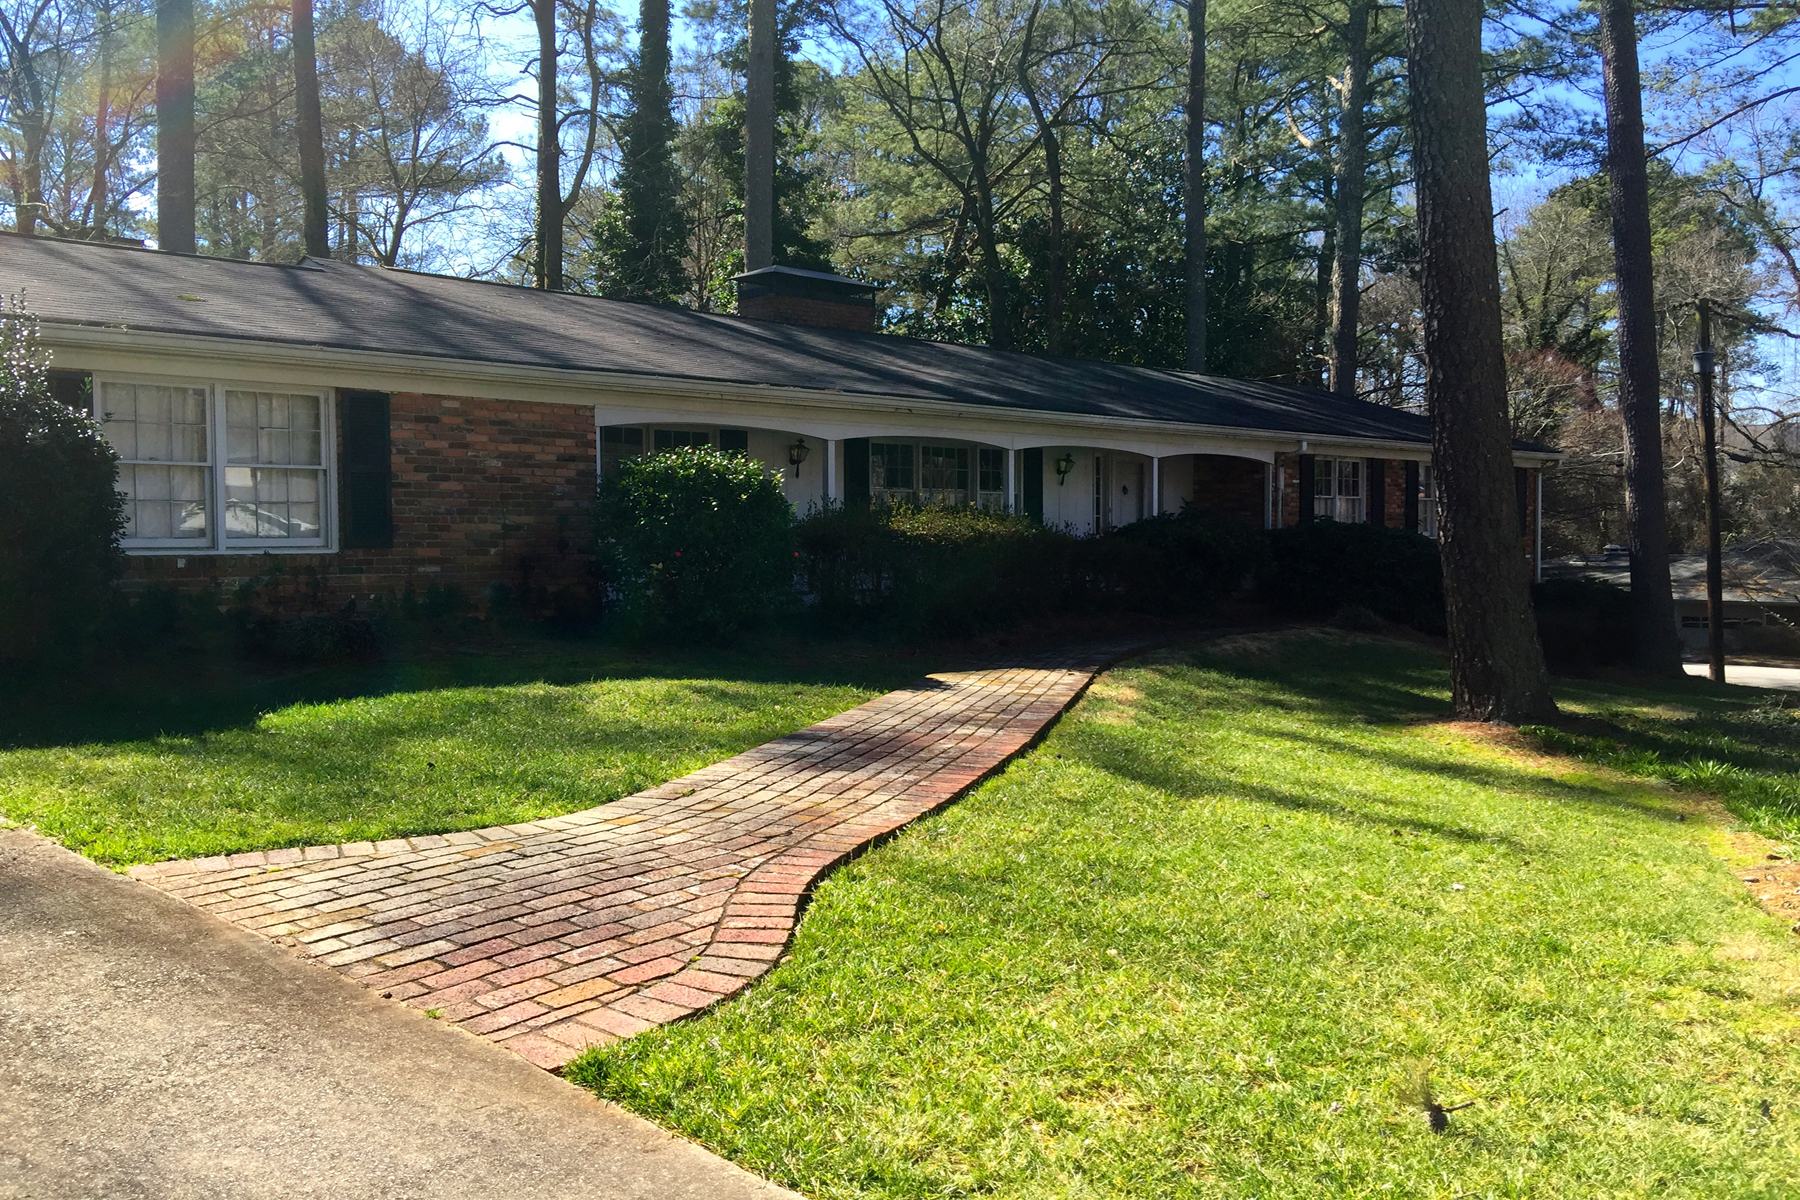 Single Family Home for Sale at Amazing Opportunity To Build Or Renovate In Chastain Park 358 Cochran Drive NW Chastain Park, Atlanta, Georgia, 30327 United States